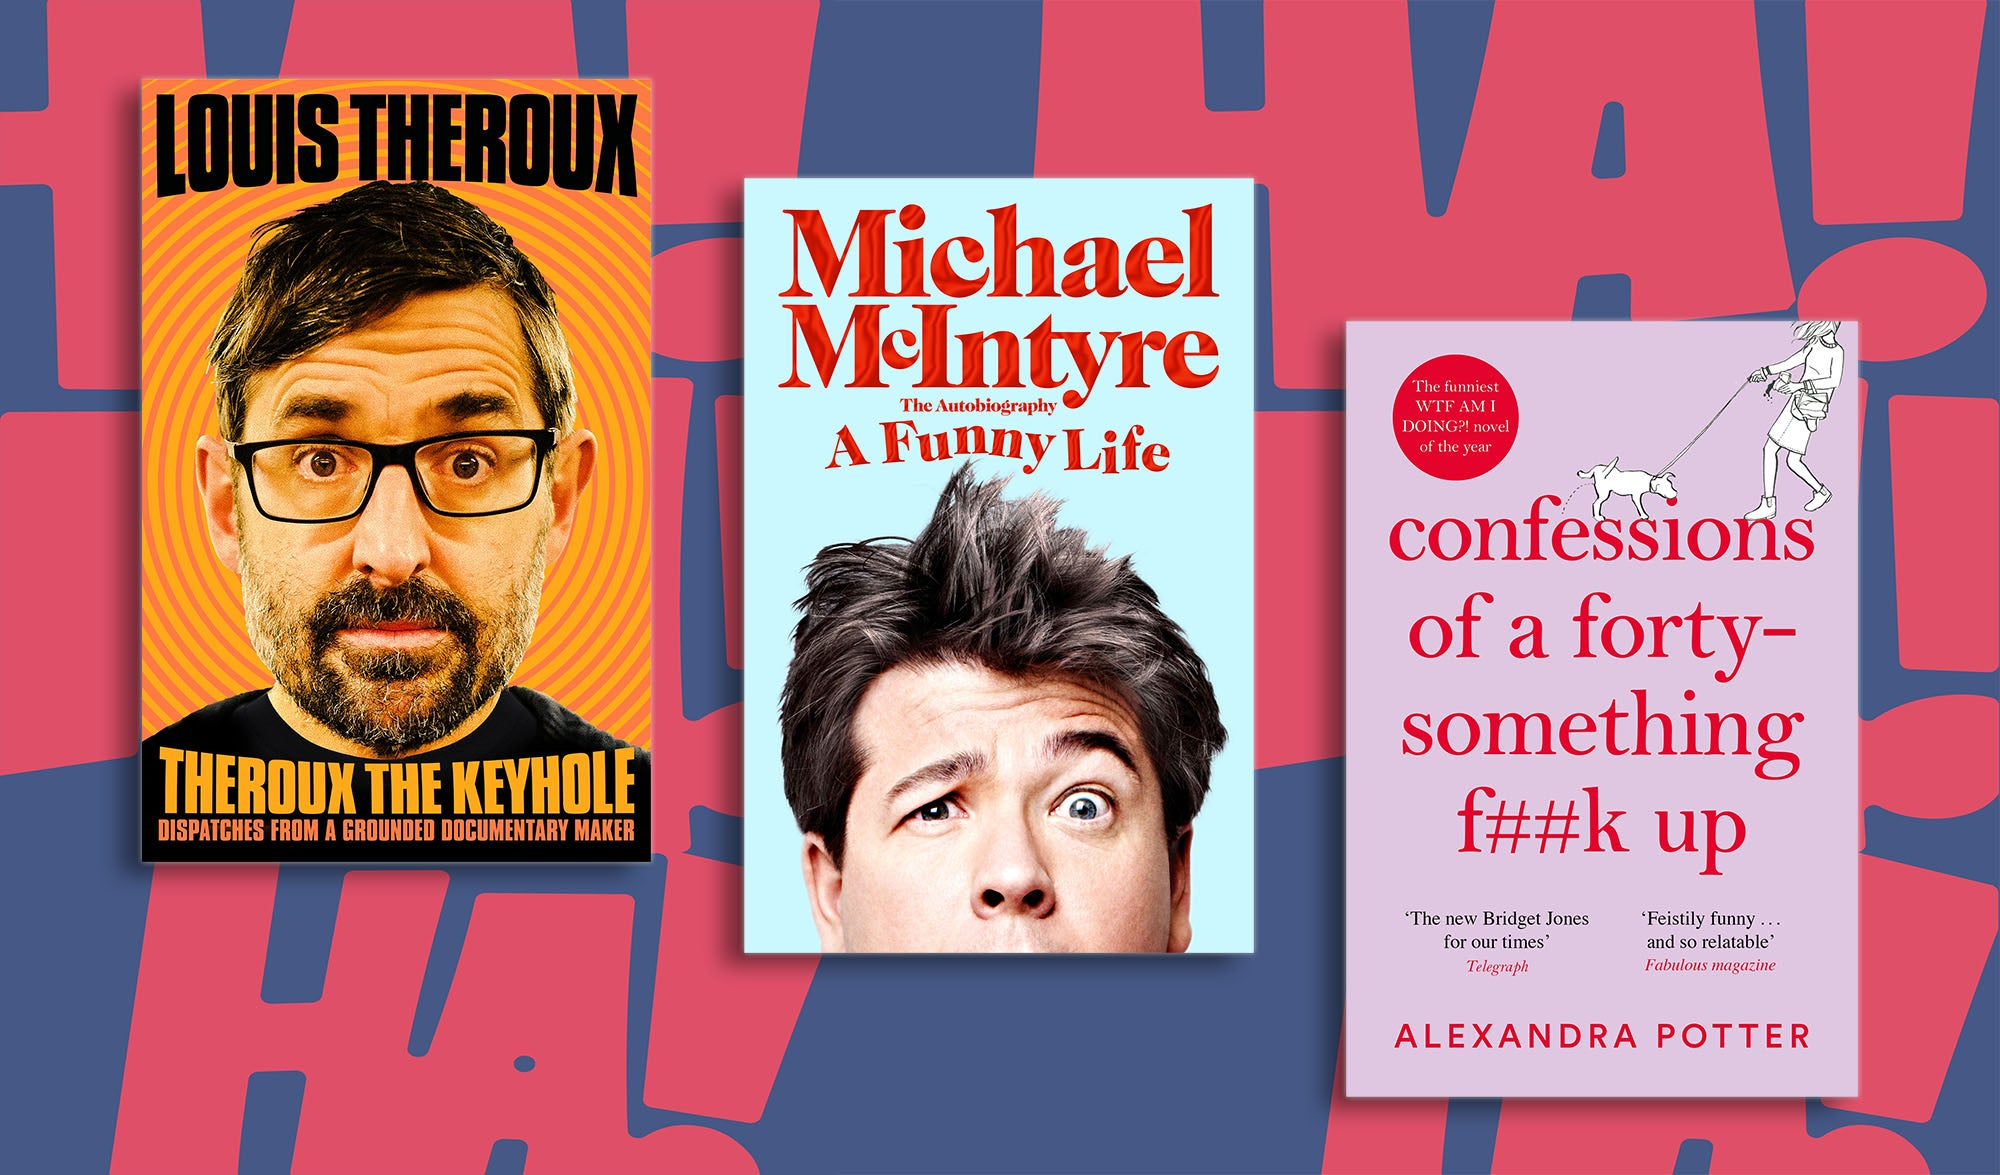 Book jackets for Theroux the Keyhole, A Funny Life and Confessions of a Forty-Something F##k Up on a colourful background showing the words: HA!HA!HA!